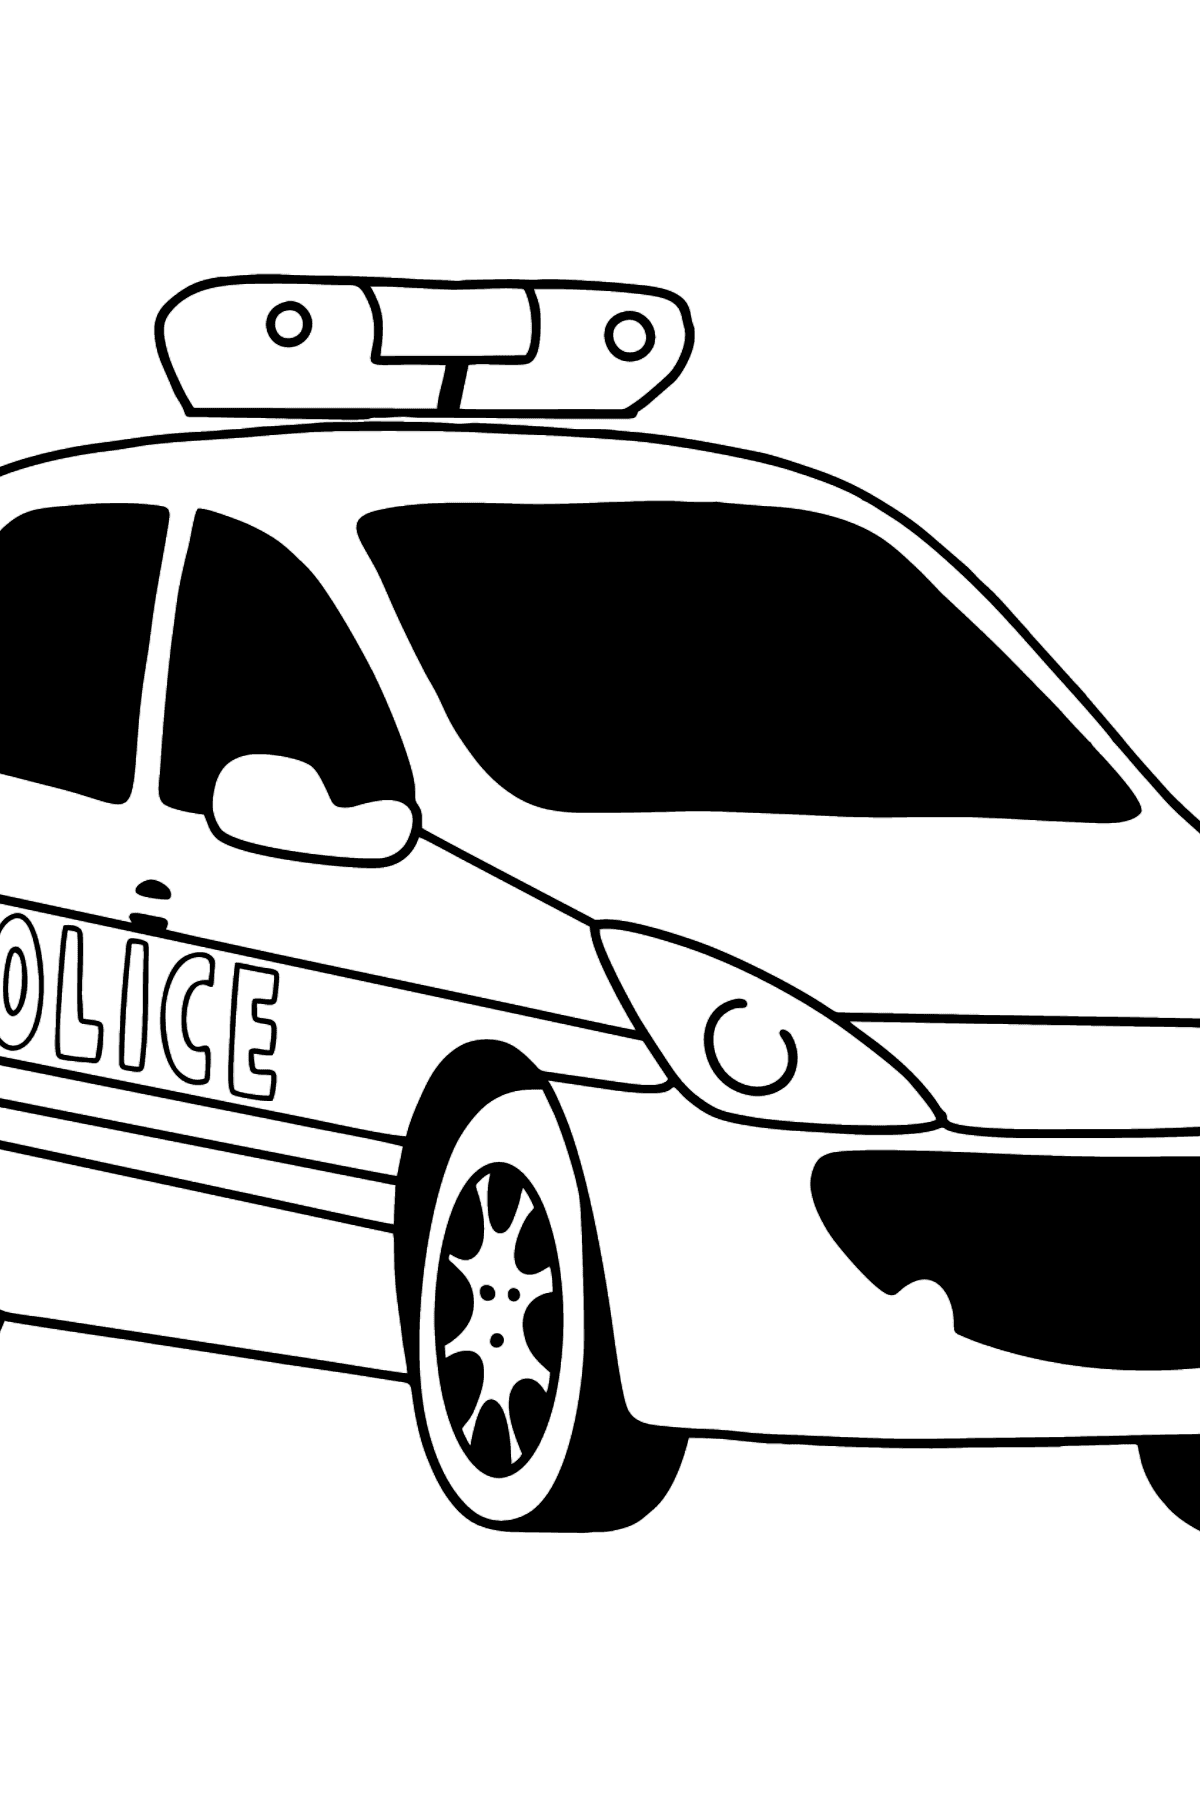 Police Car in France coloring page - Coloring Pages for Kids